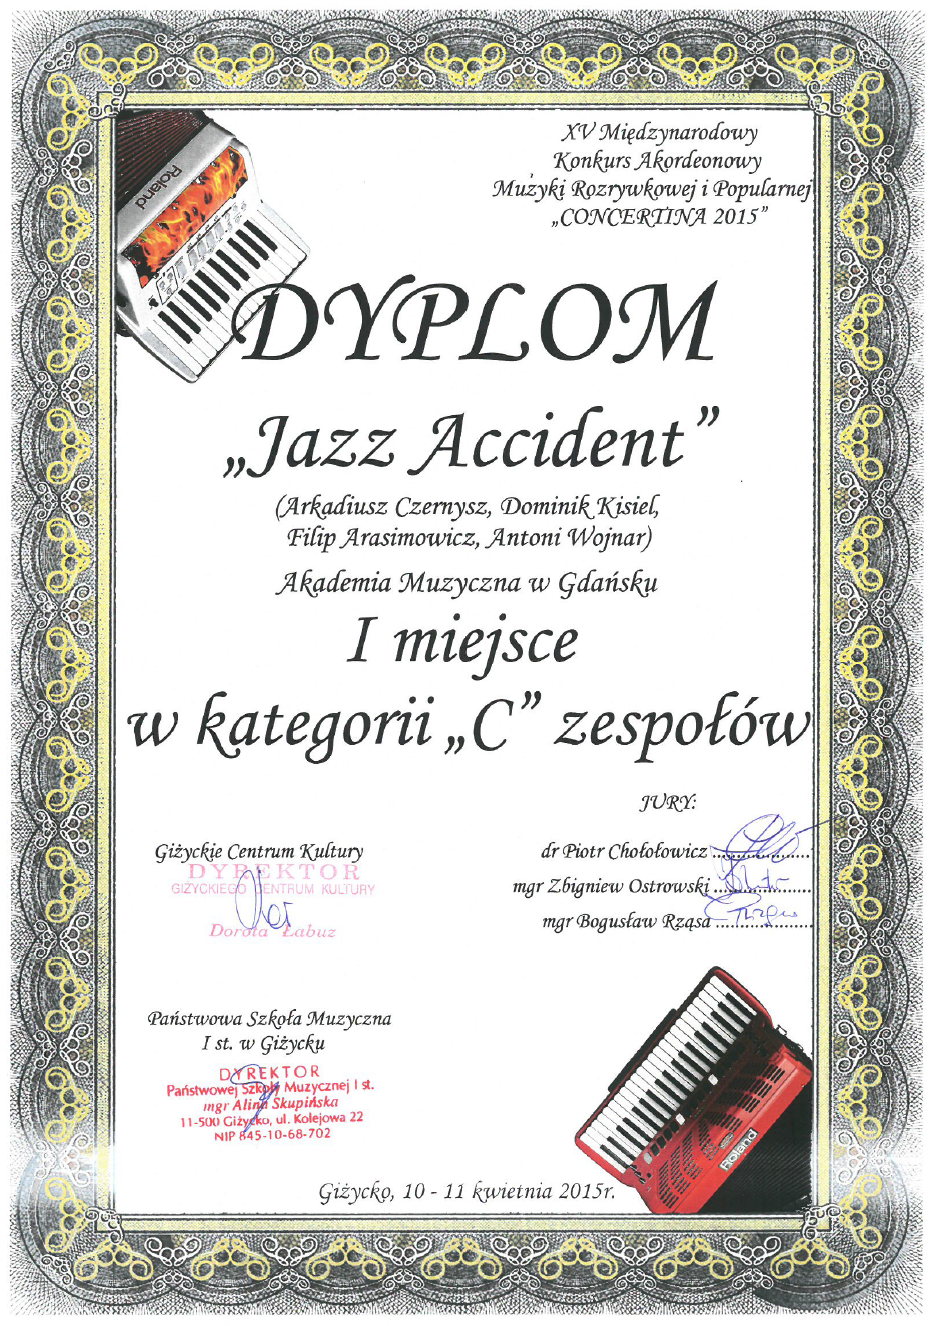 Jazz_Accident_dyplom_2015